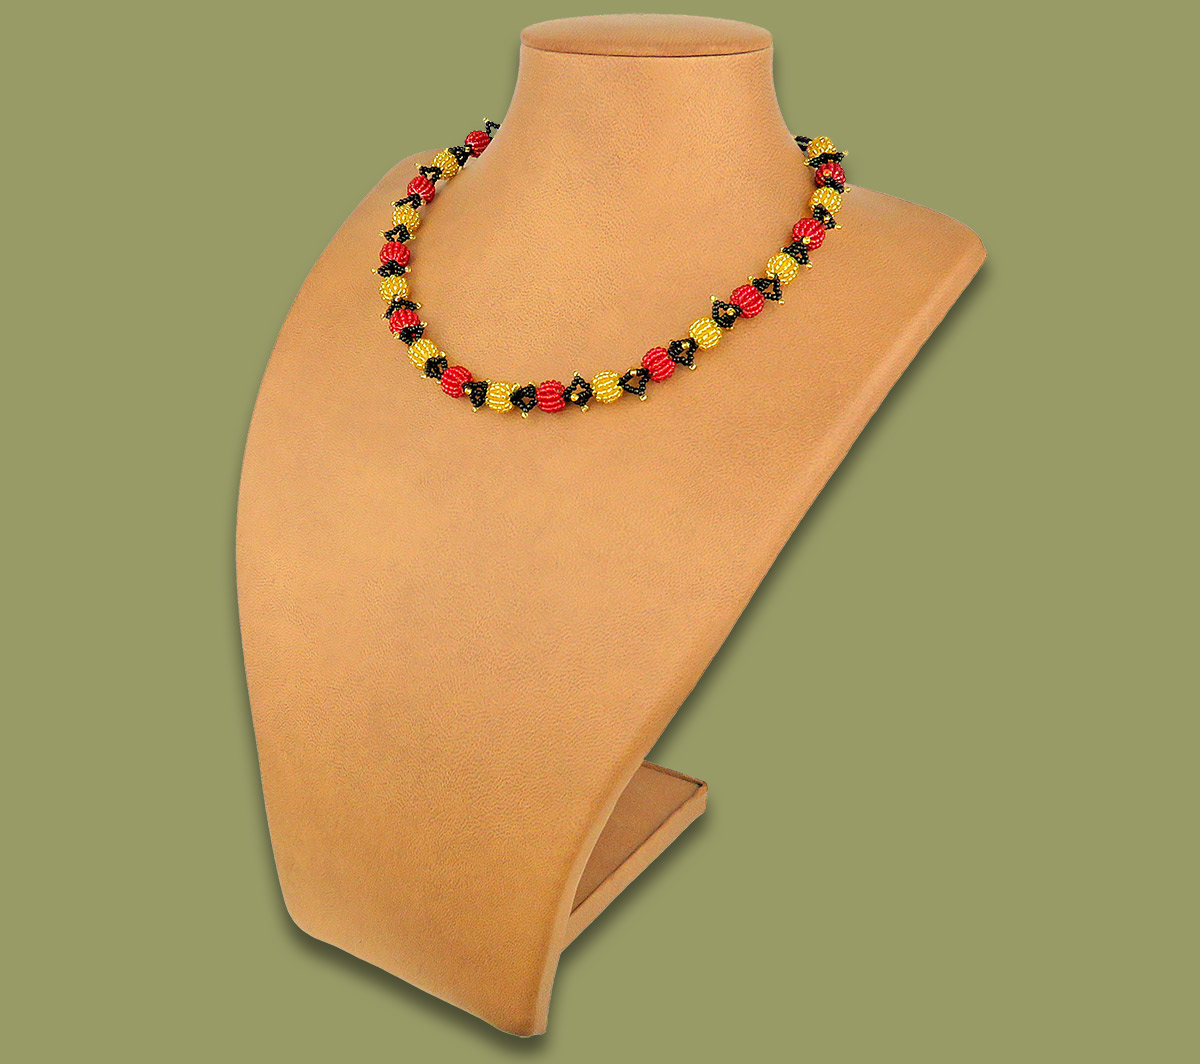 African Beaded Necklace Small Bobble Red Gold Black